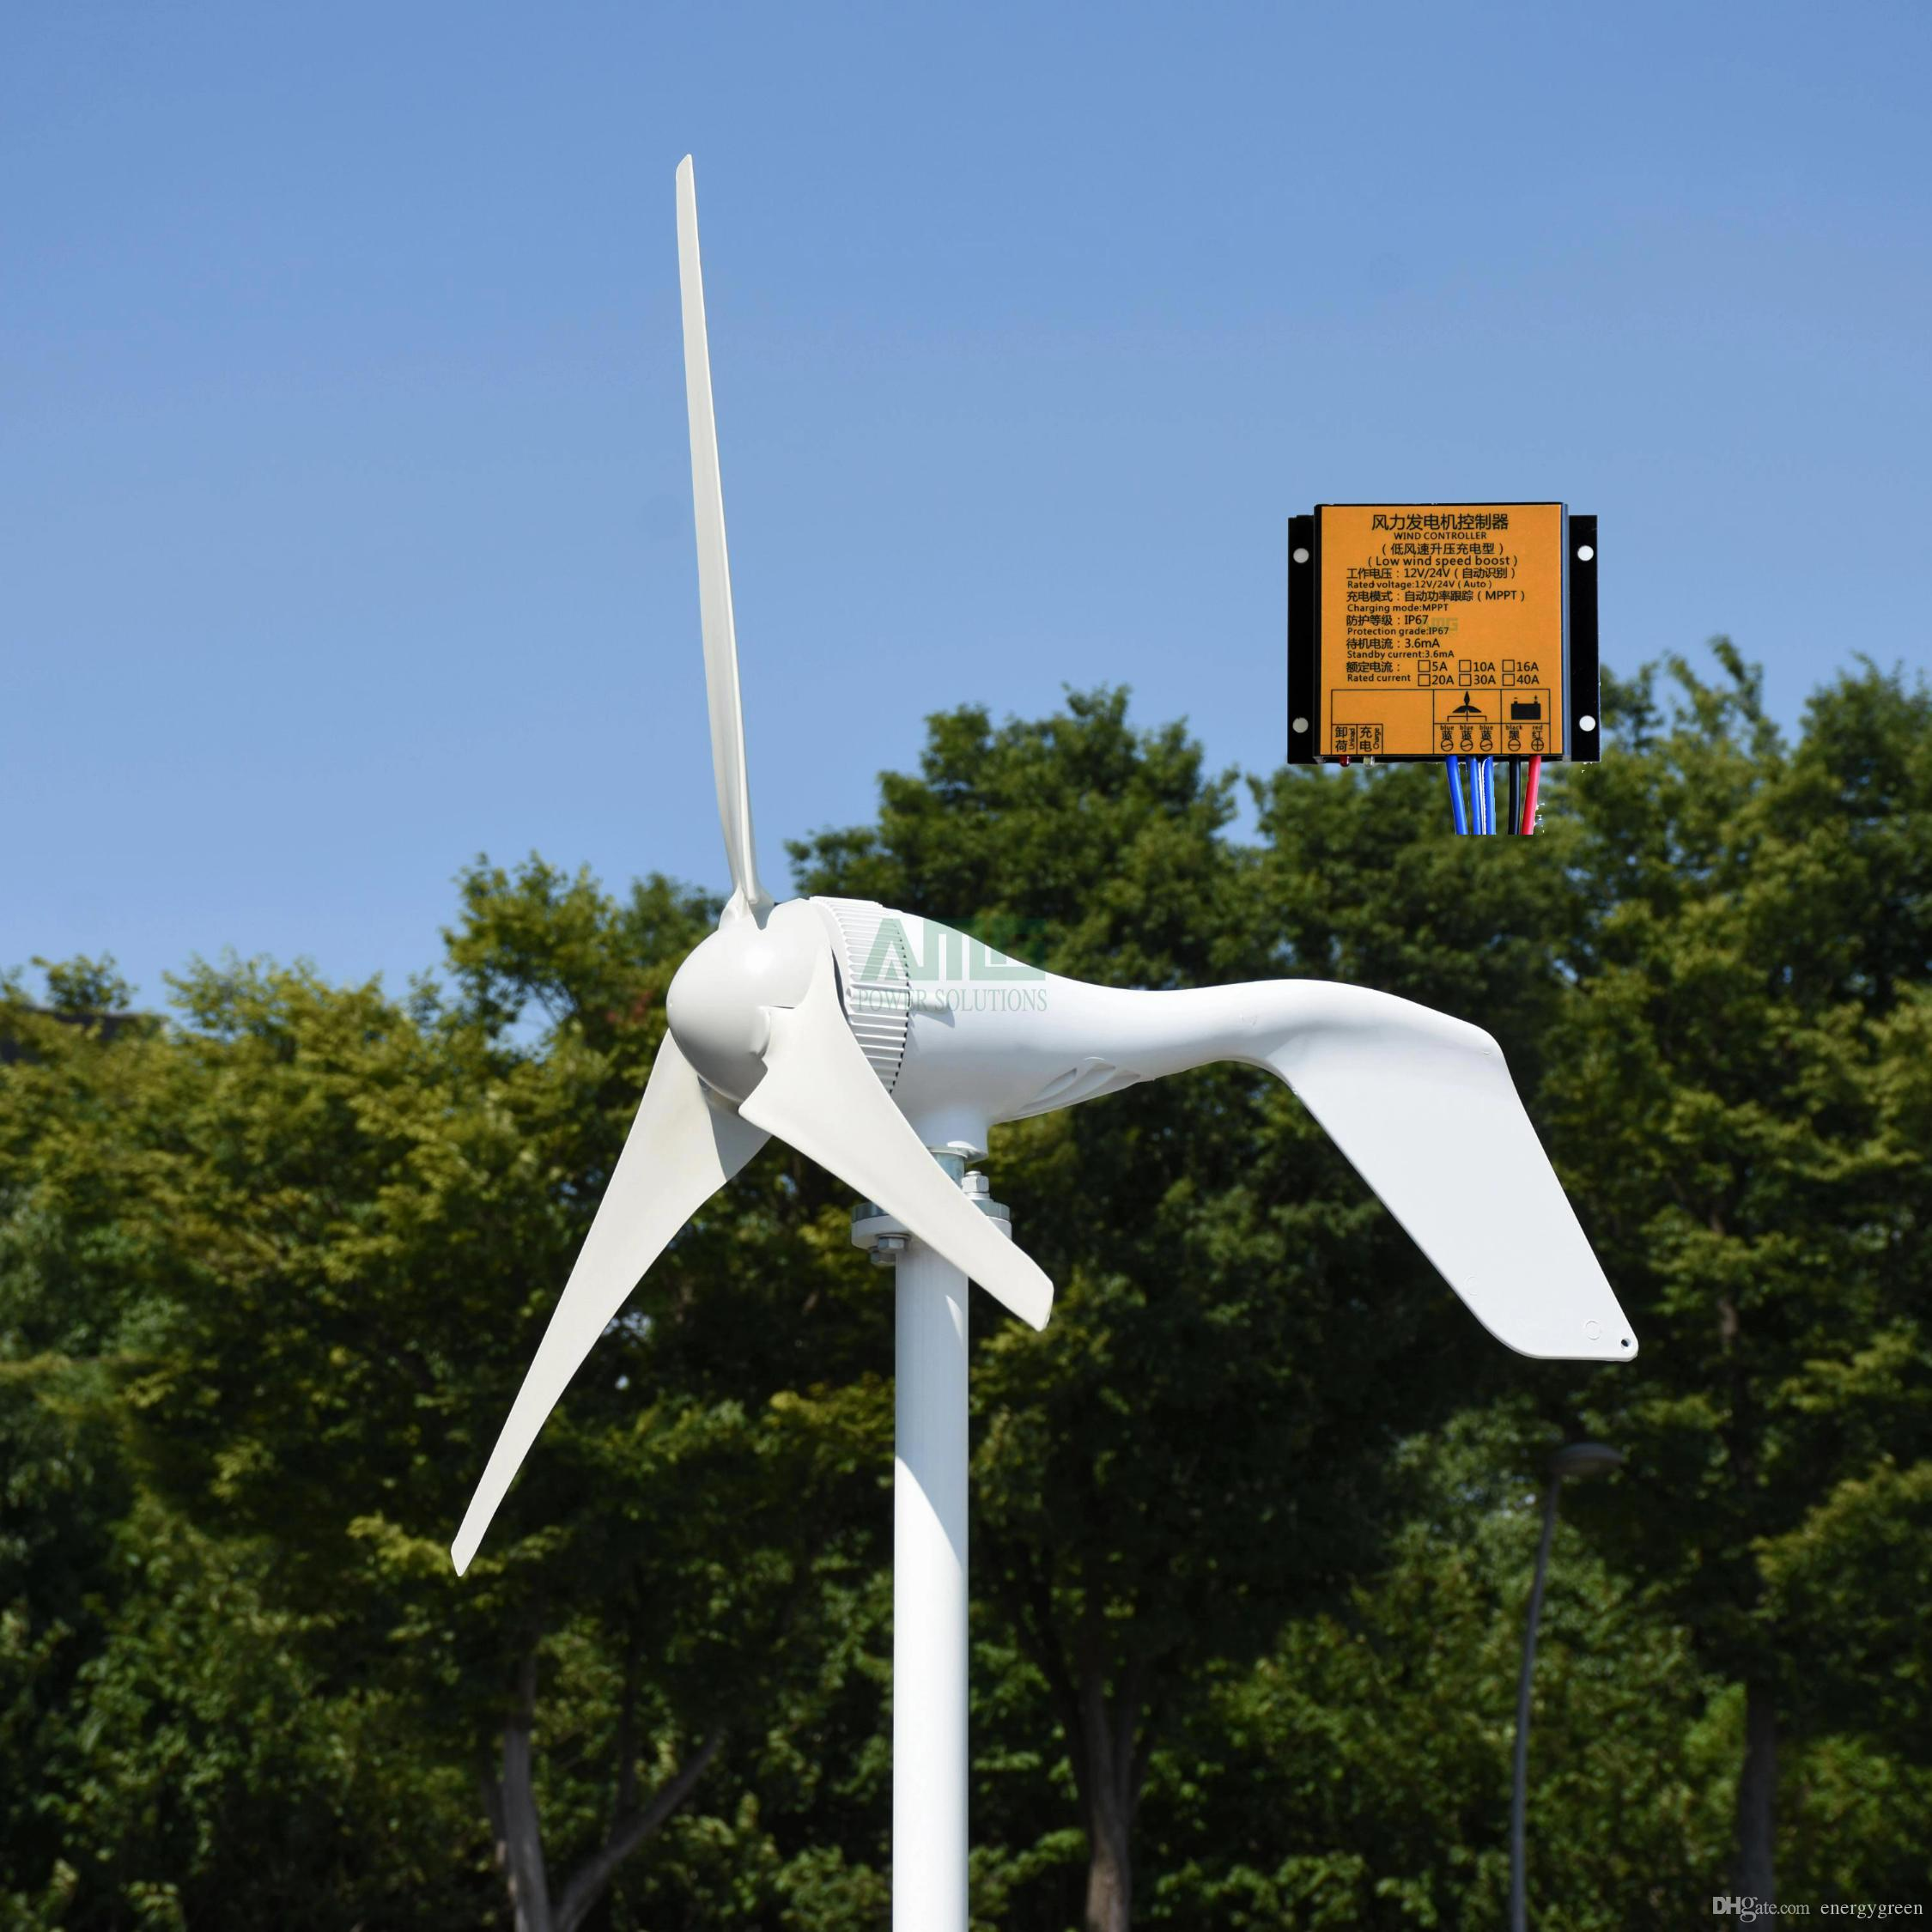 New 400w 12v 24v 5 or 3 blades wind turbine generator for streetlights use  home use with MPPT controller